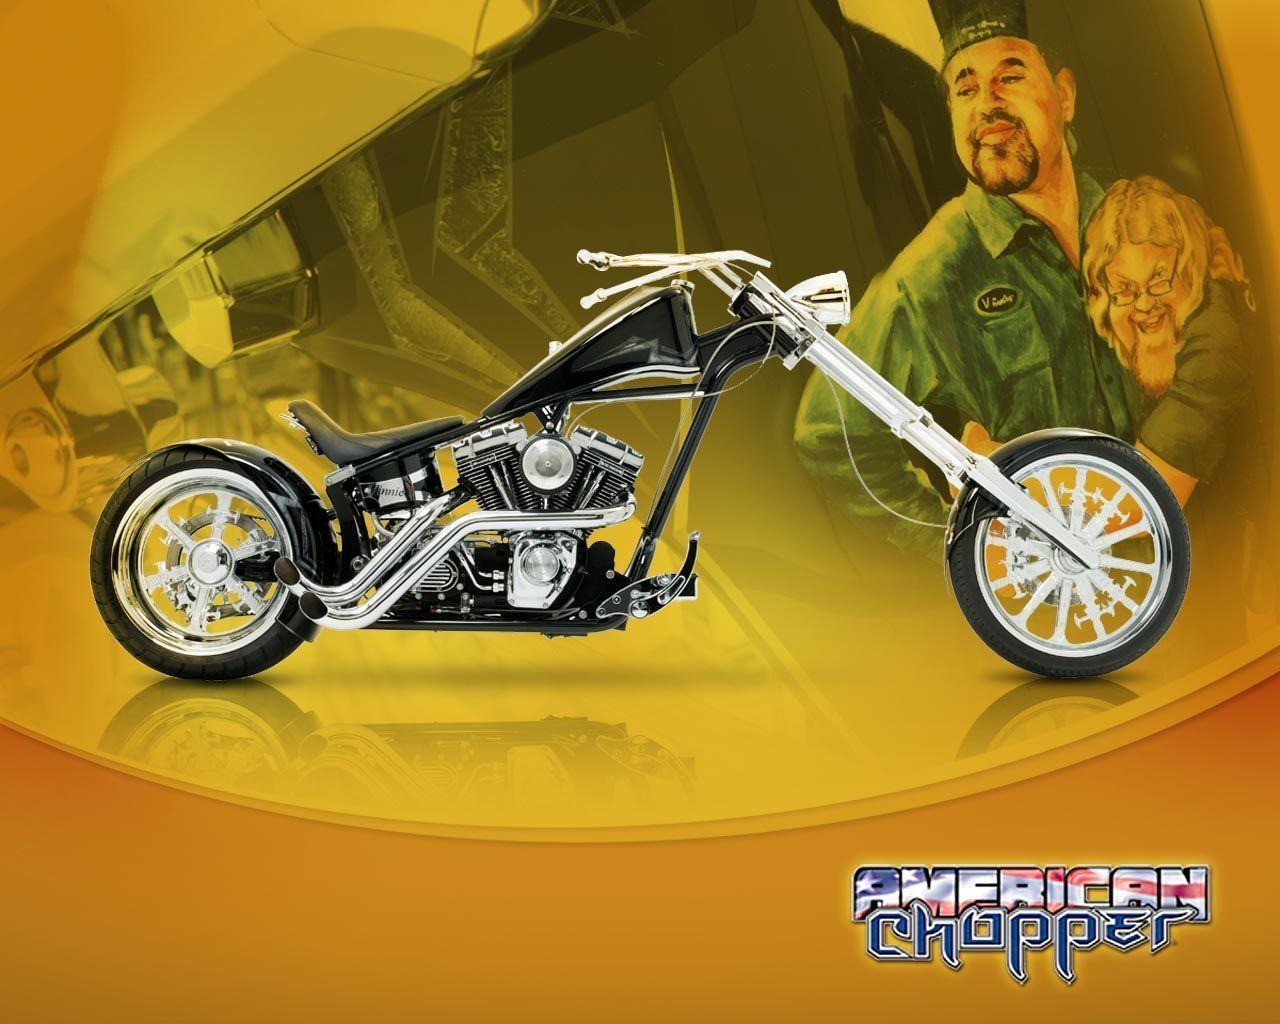 Occ Choppers Wallpapers 1280x1024